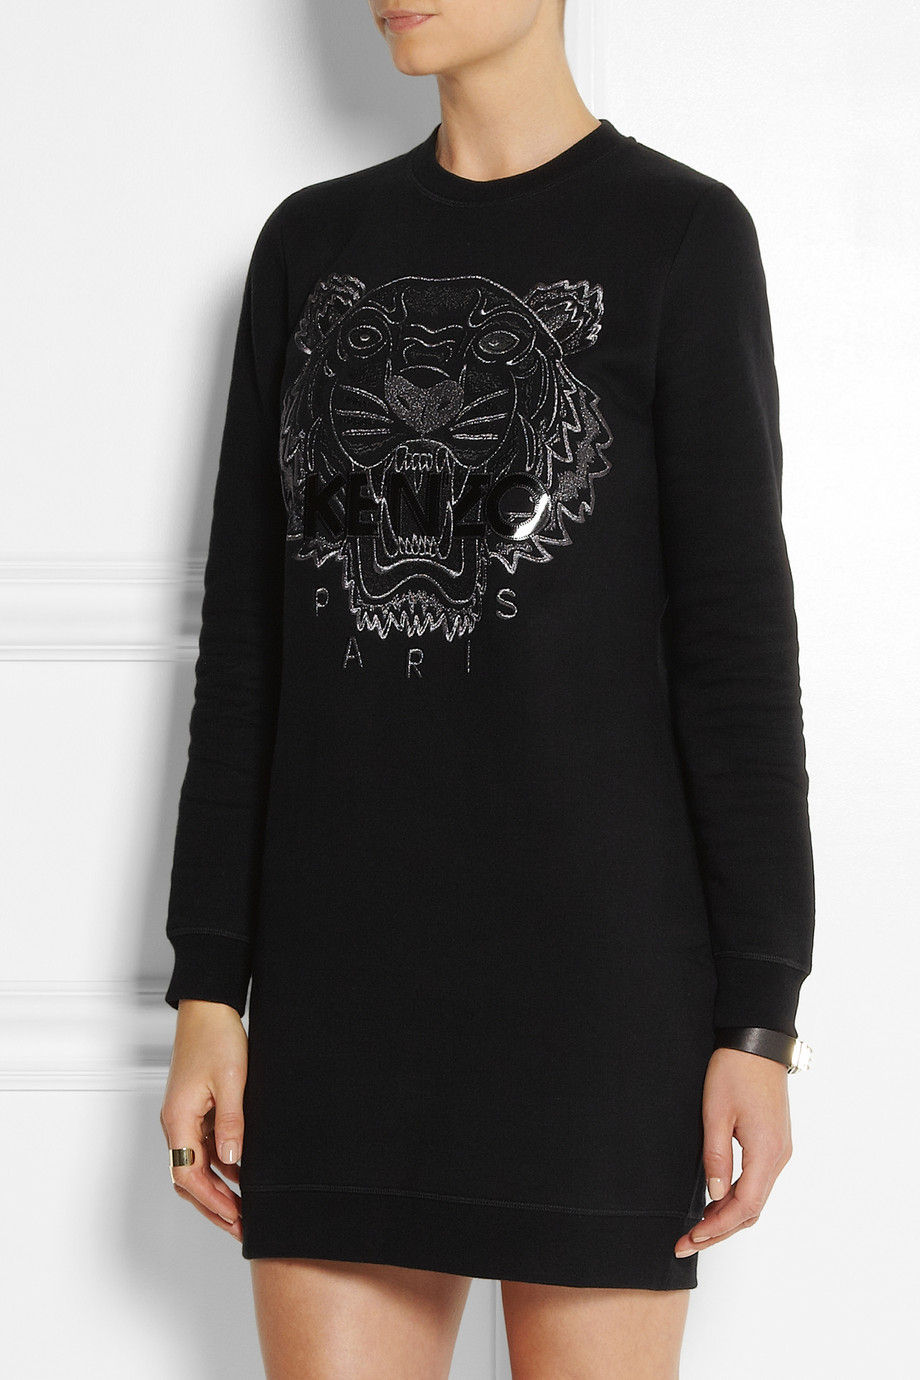 Lyst Kenzo Tiger Embroidered Cotton Sweatshirt Dress In